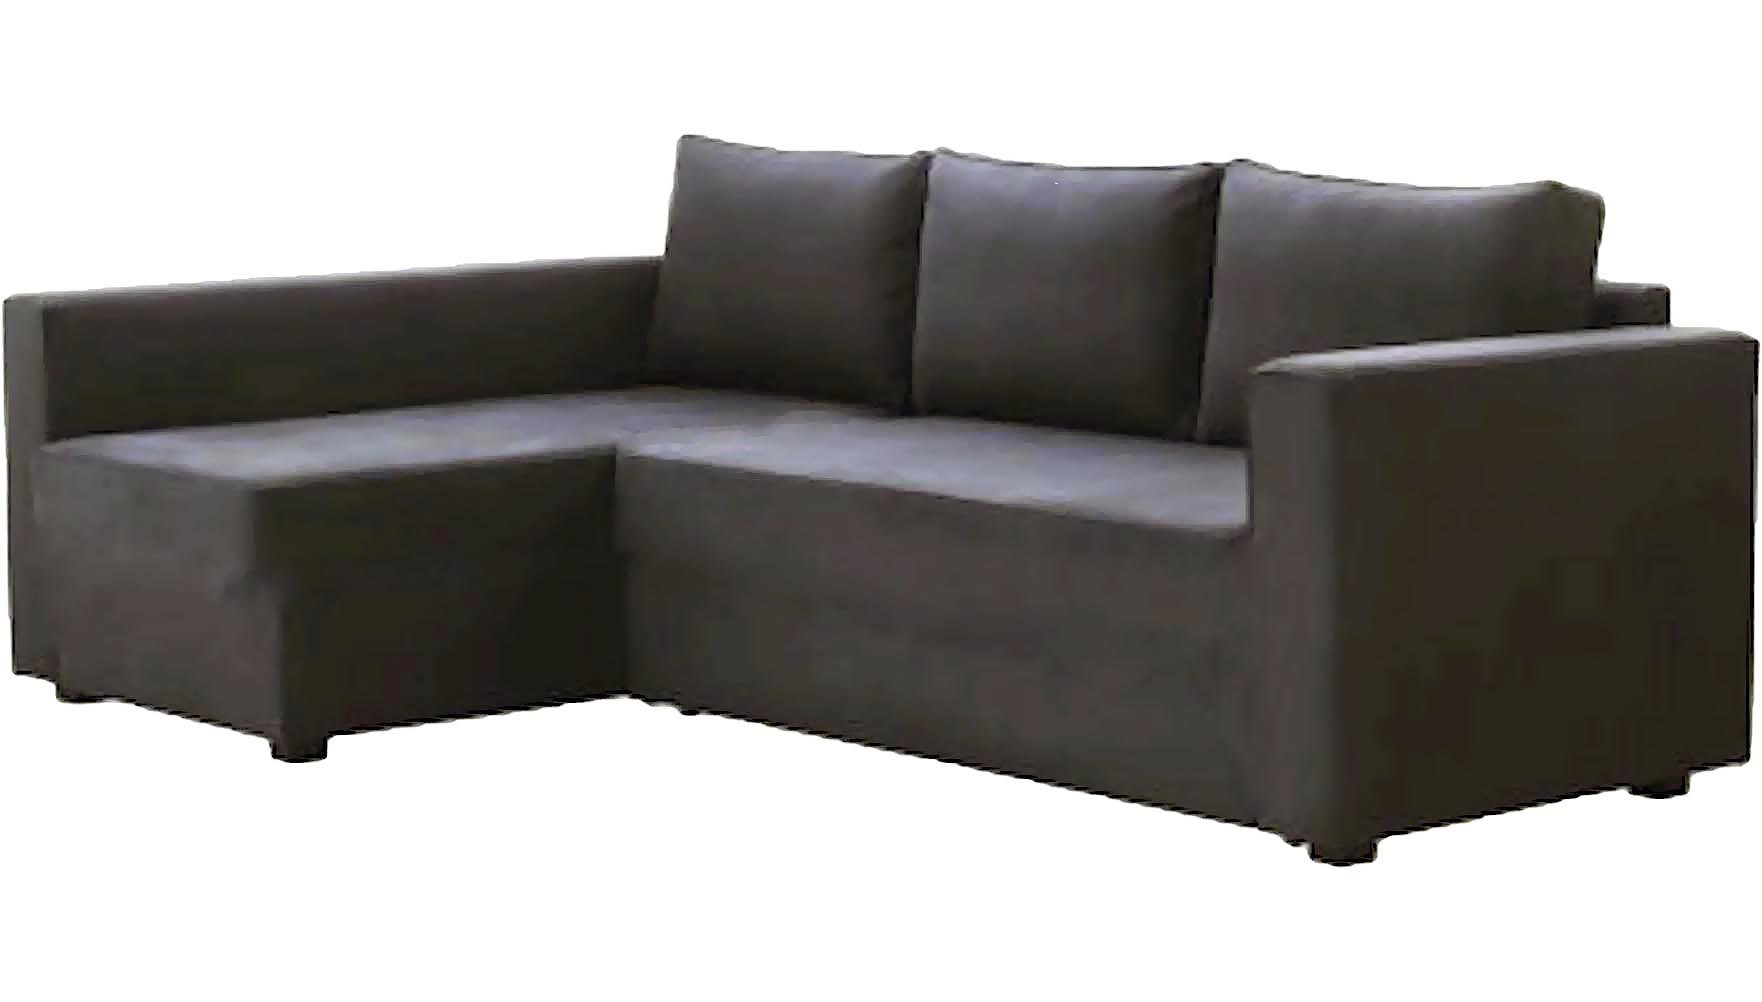 The Dark Gray Manstad Cover Replacement Is Custom Made For Ikea Manstad Sofa Bed, Or Sectional, Or Corner Slipcover. Sofa Cover Only!. (Longer Right Arm) by HomeTown Market